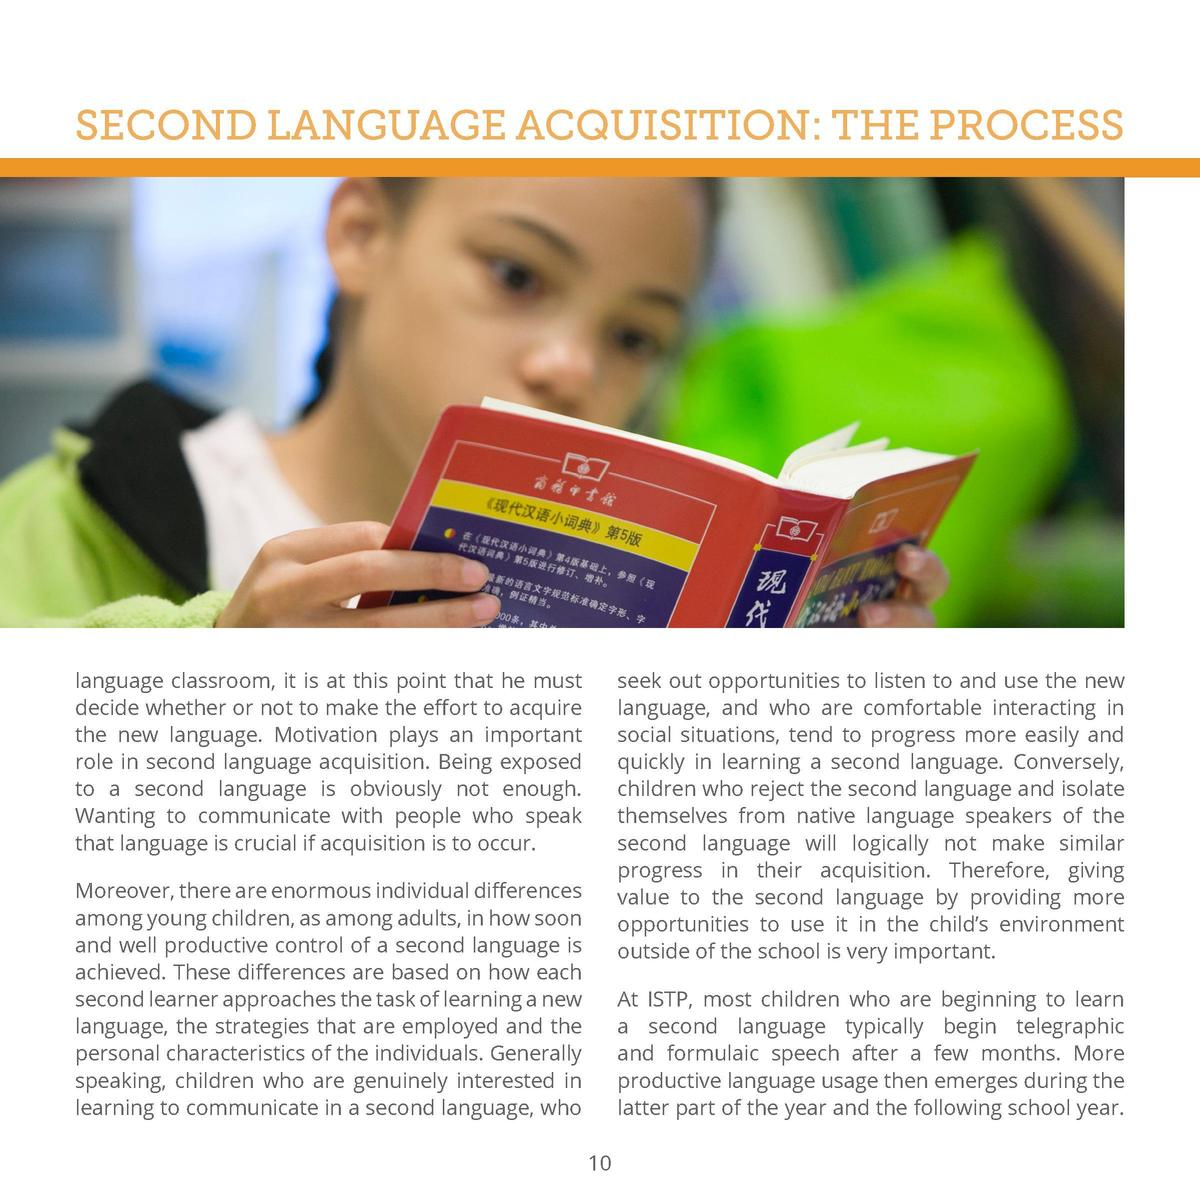 SECOND LANGUAGE ACQUISITION  THE PROCESS However, as indicated above, the rate of acquisition varies among children.  lang...